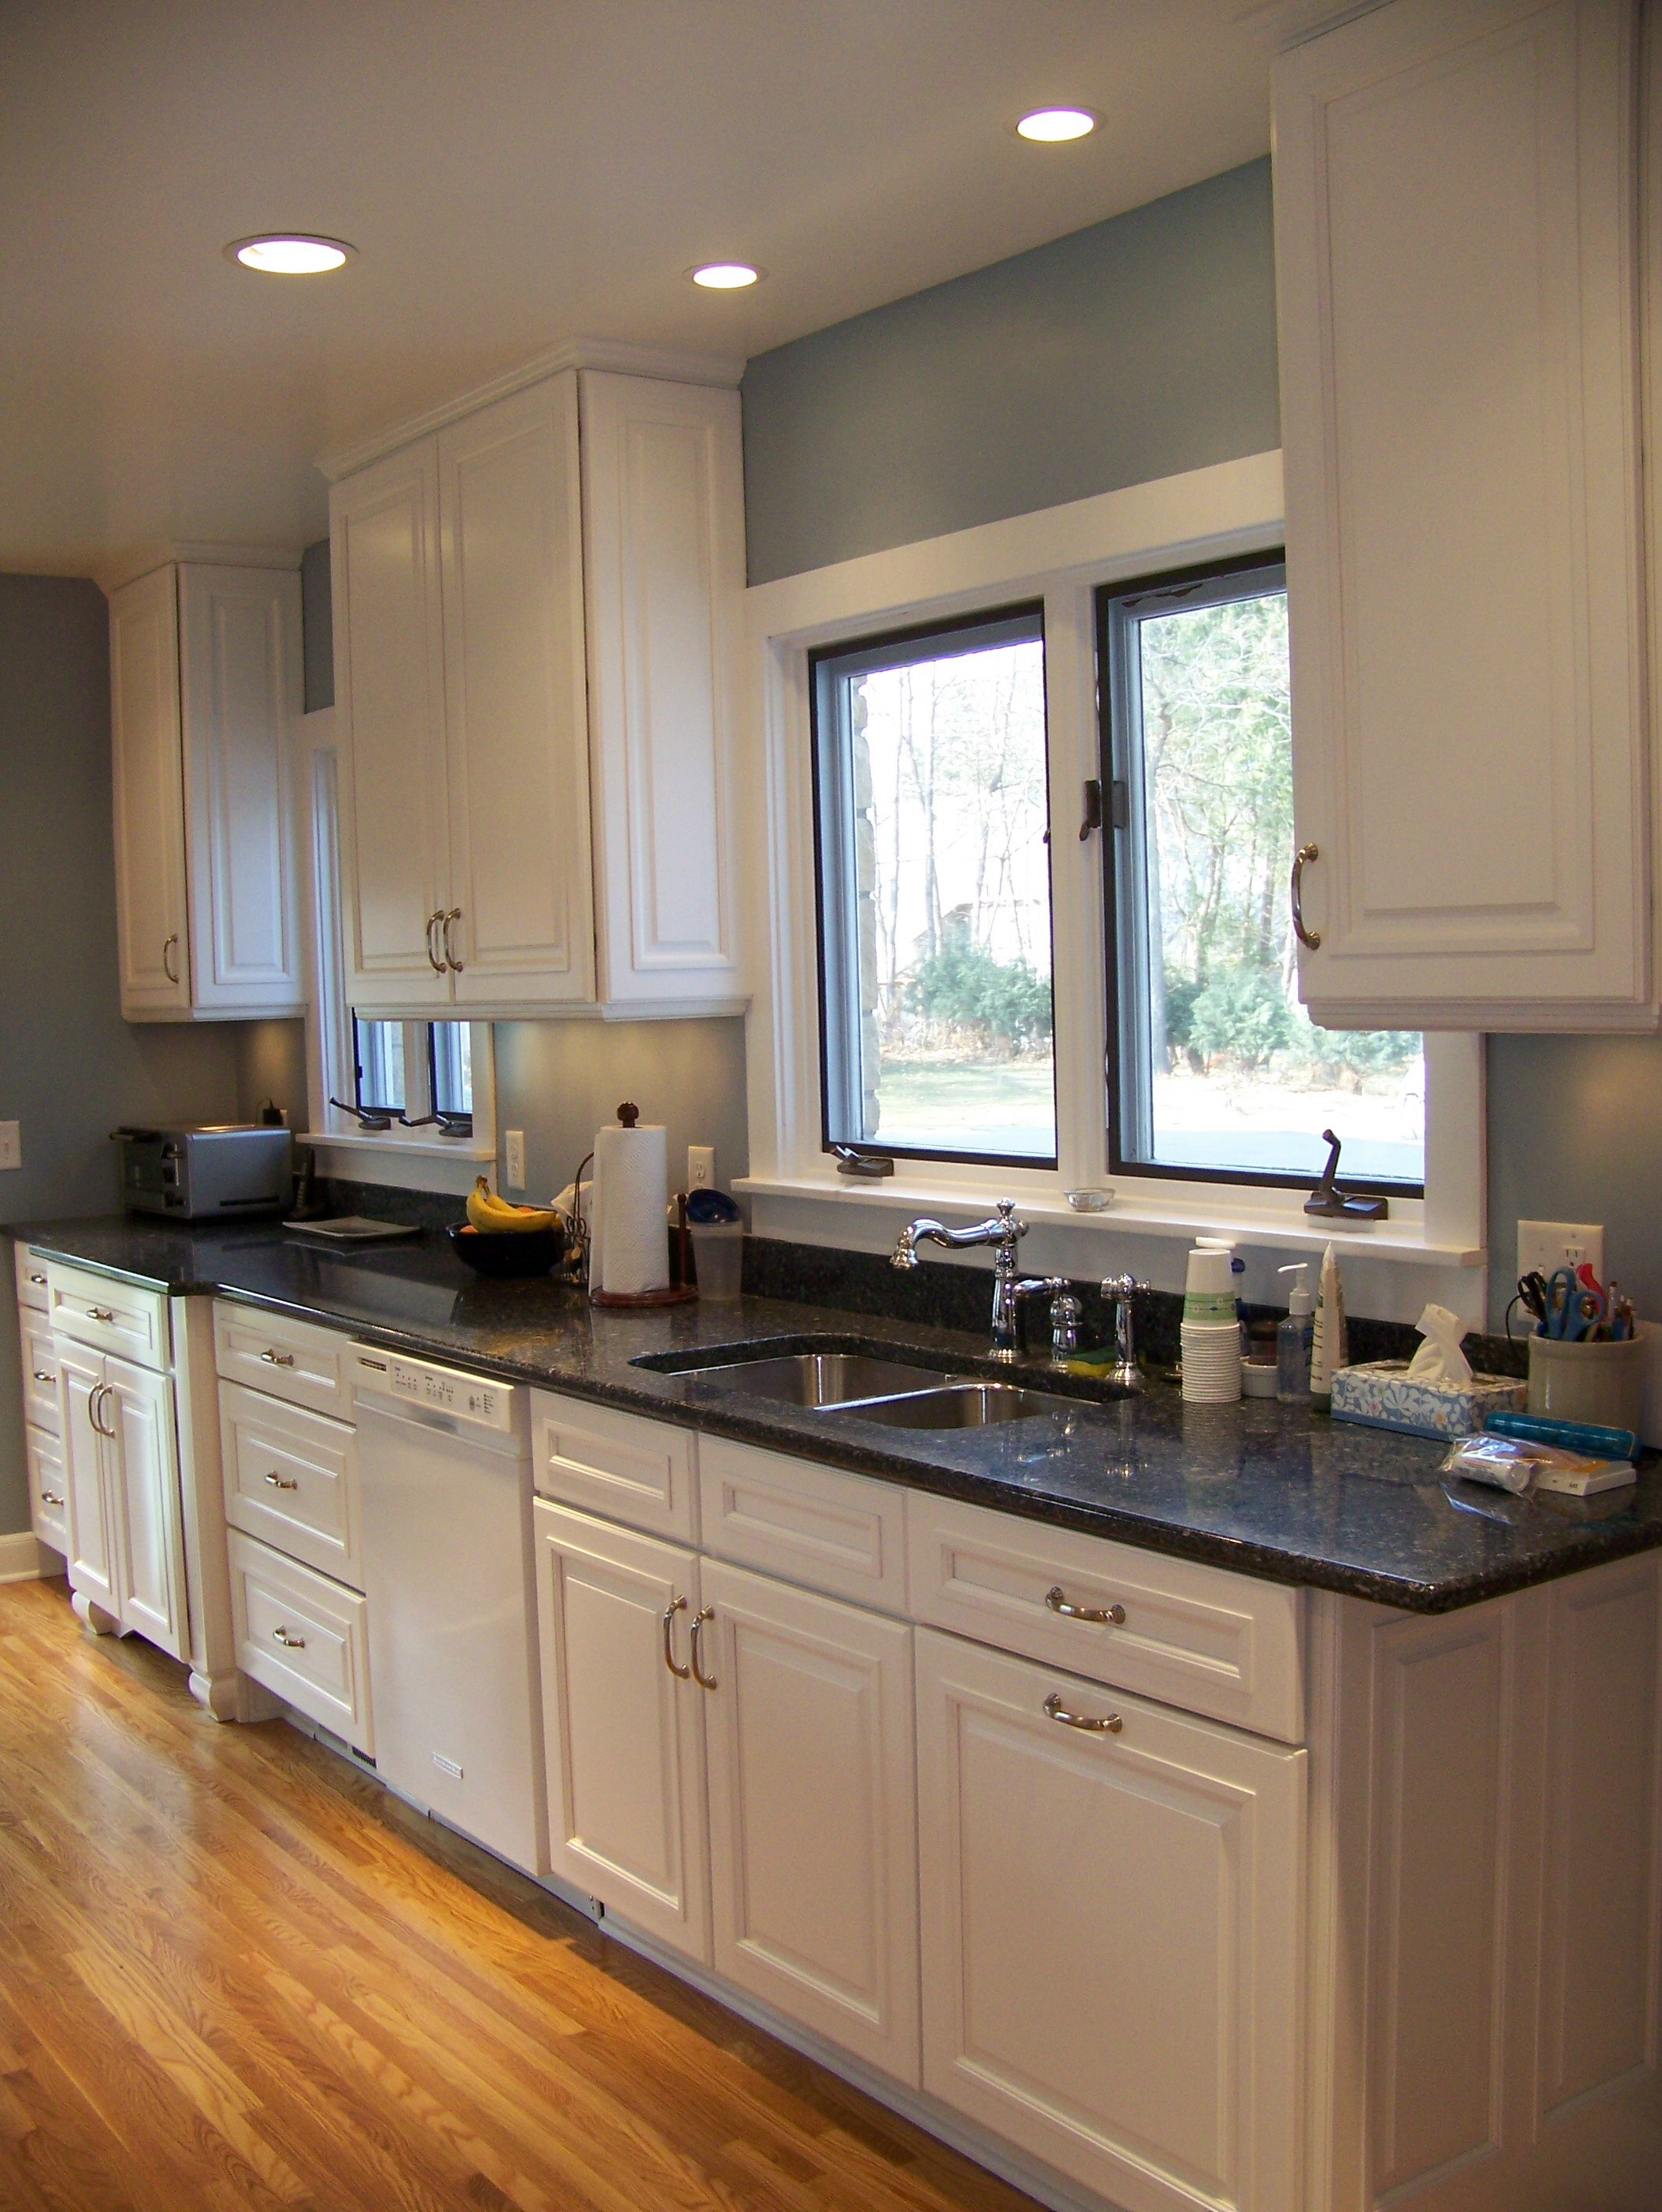 2nd st e kitchen remodel kitchen remodel pictures Kitchen Remodel